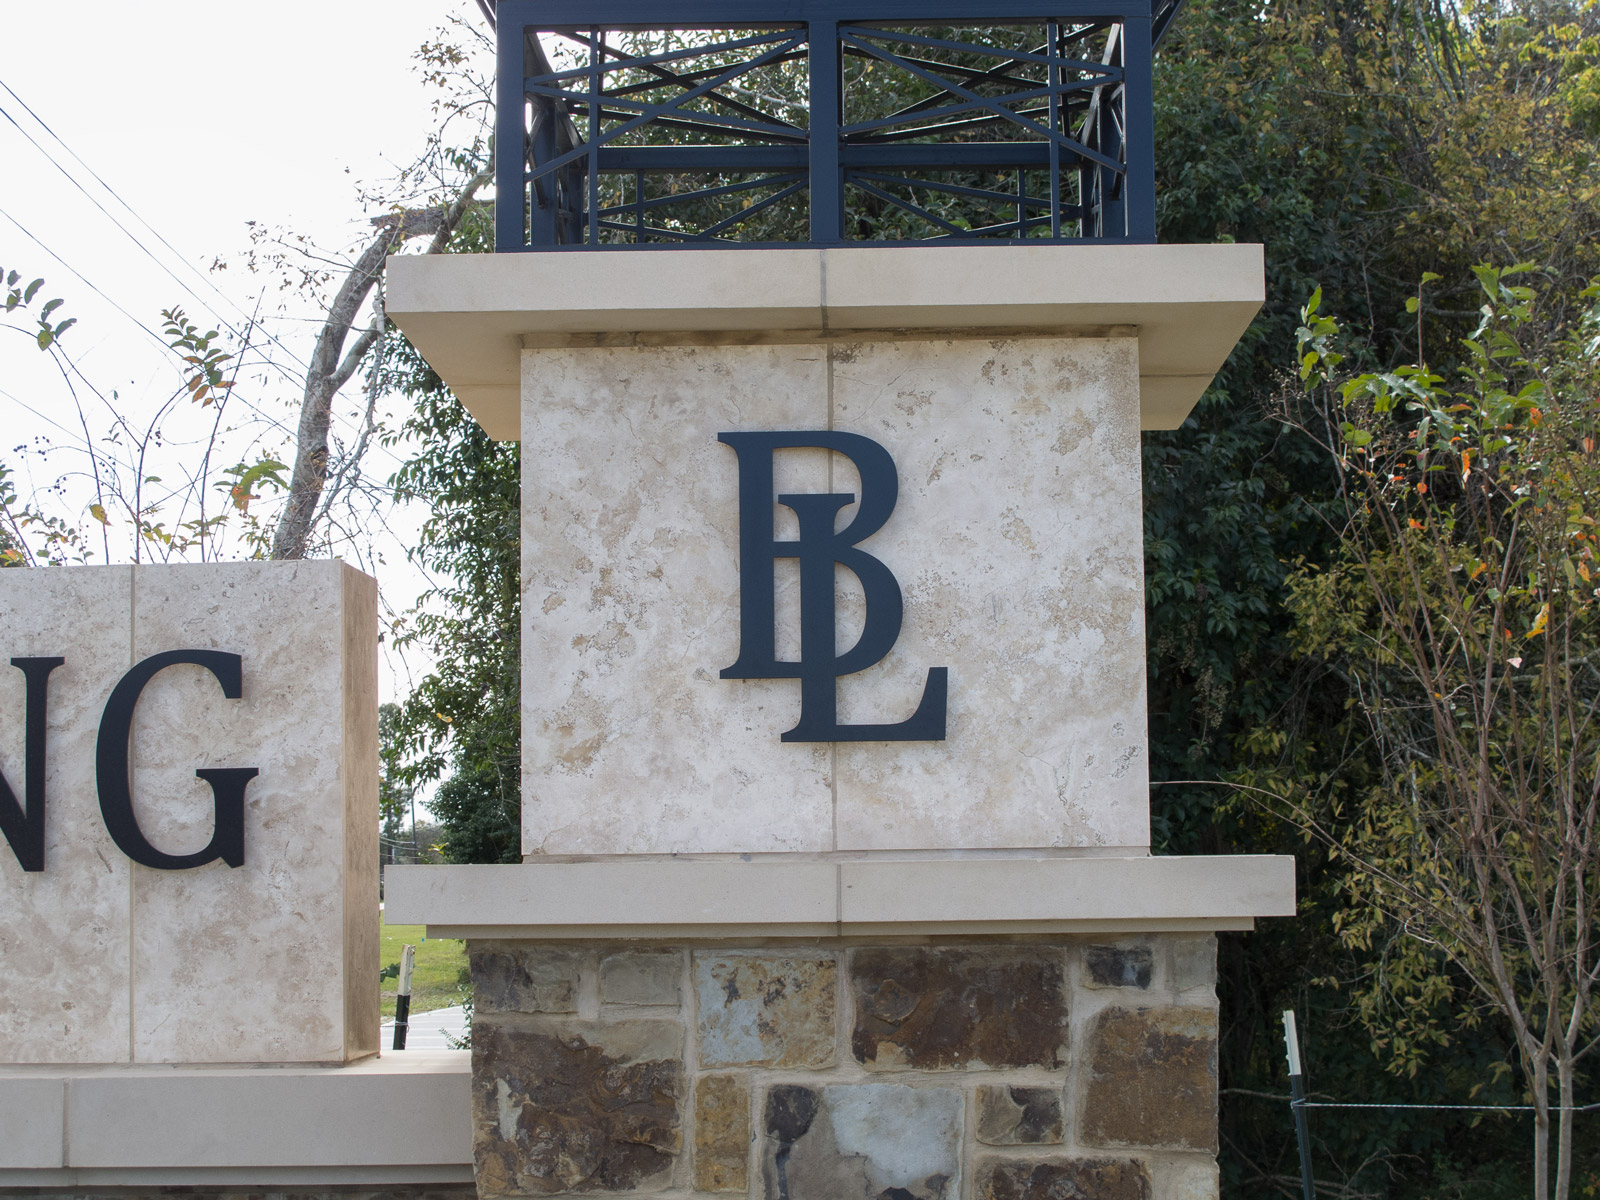 Close up view of dimensional aluminum logo mounted to monument tower.